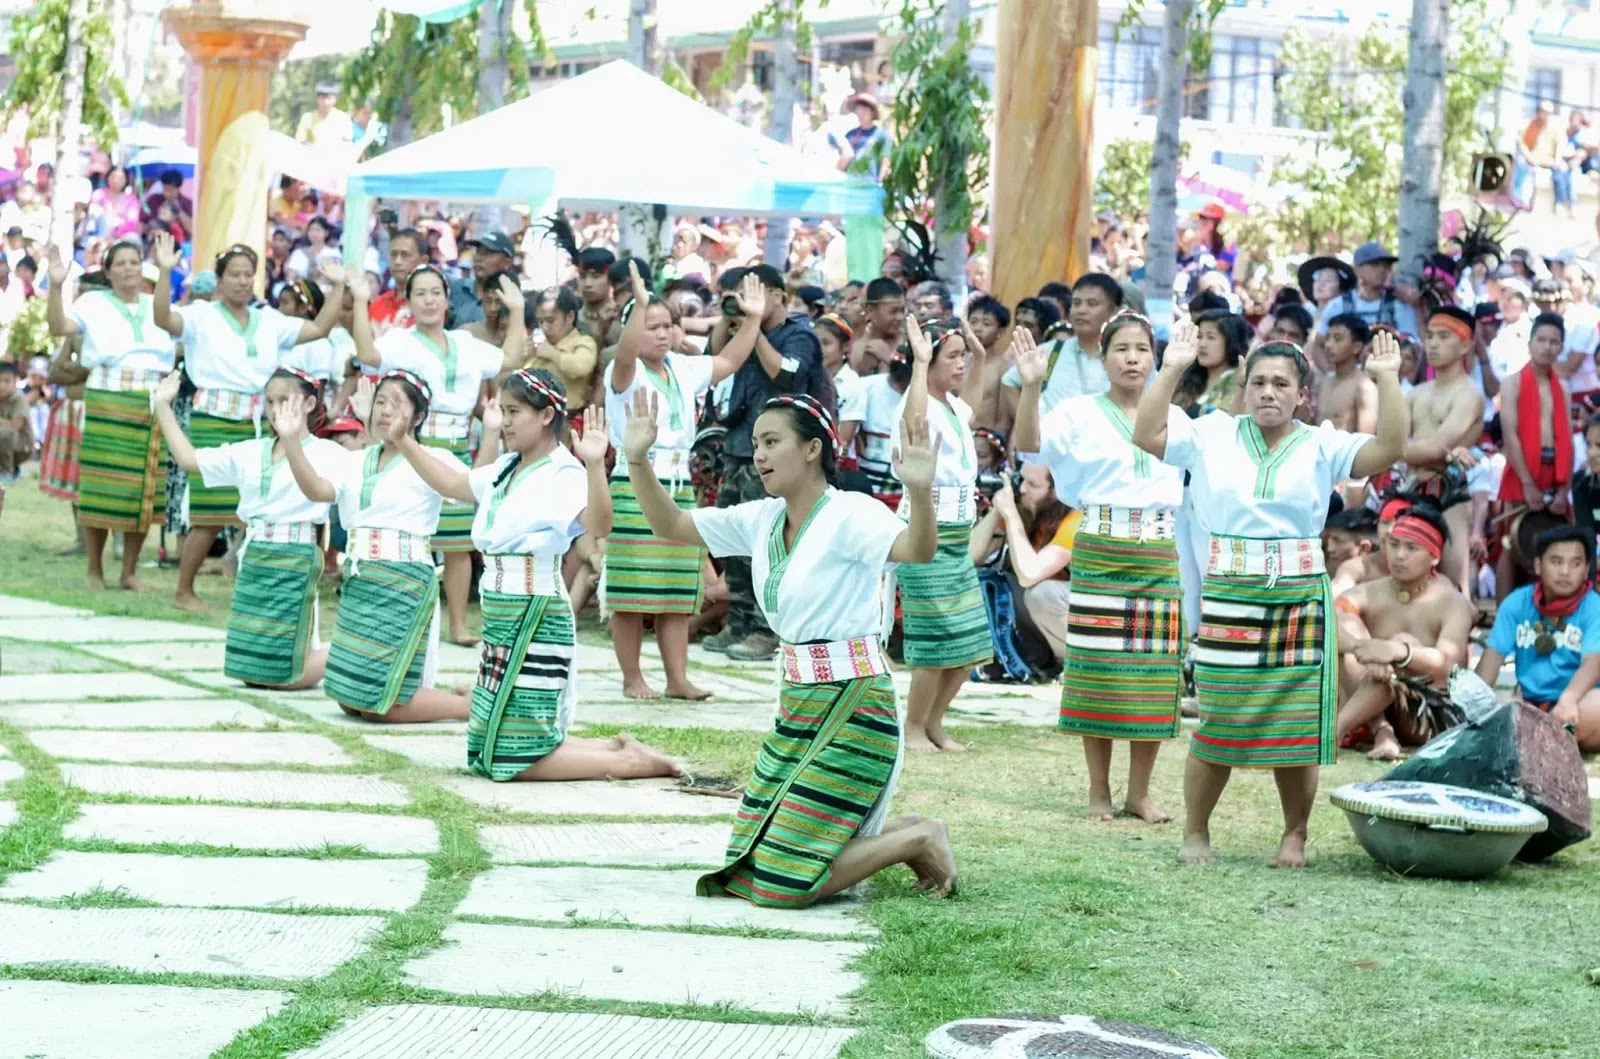 Ethno-Indigenous Women On Bended Kness 13th Lang-Ay Festival Bontoc Mountain Province Cordillera Administrative Region Philippines